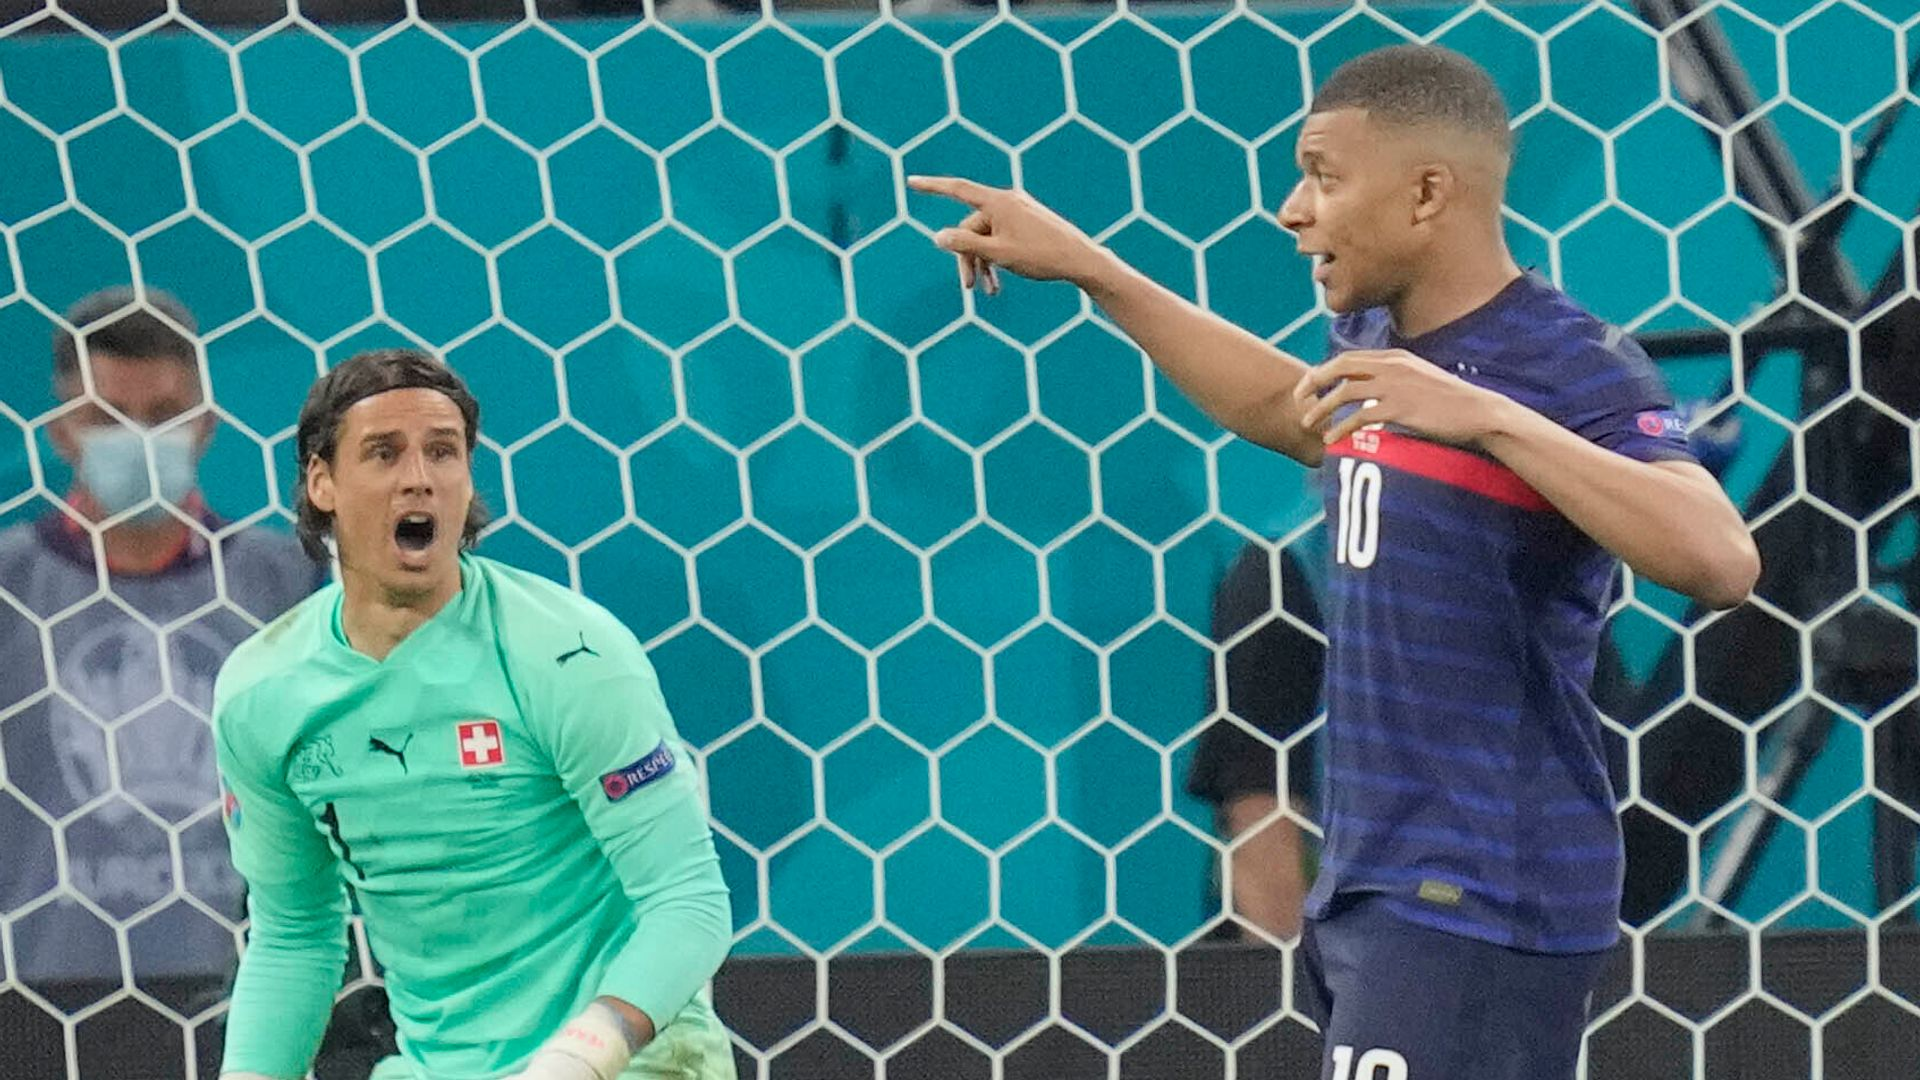 'I'm sorry, I failed' - Mbappe left low | Lloris: No pointing fingers